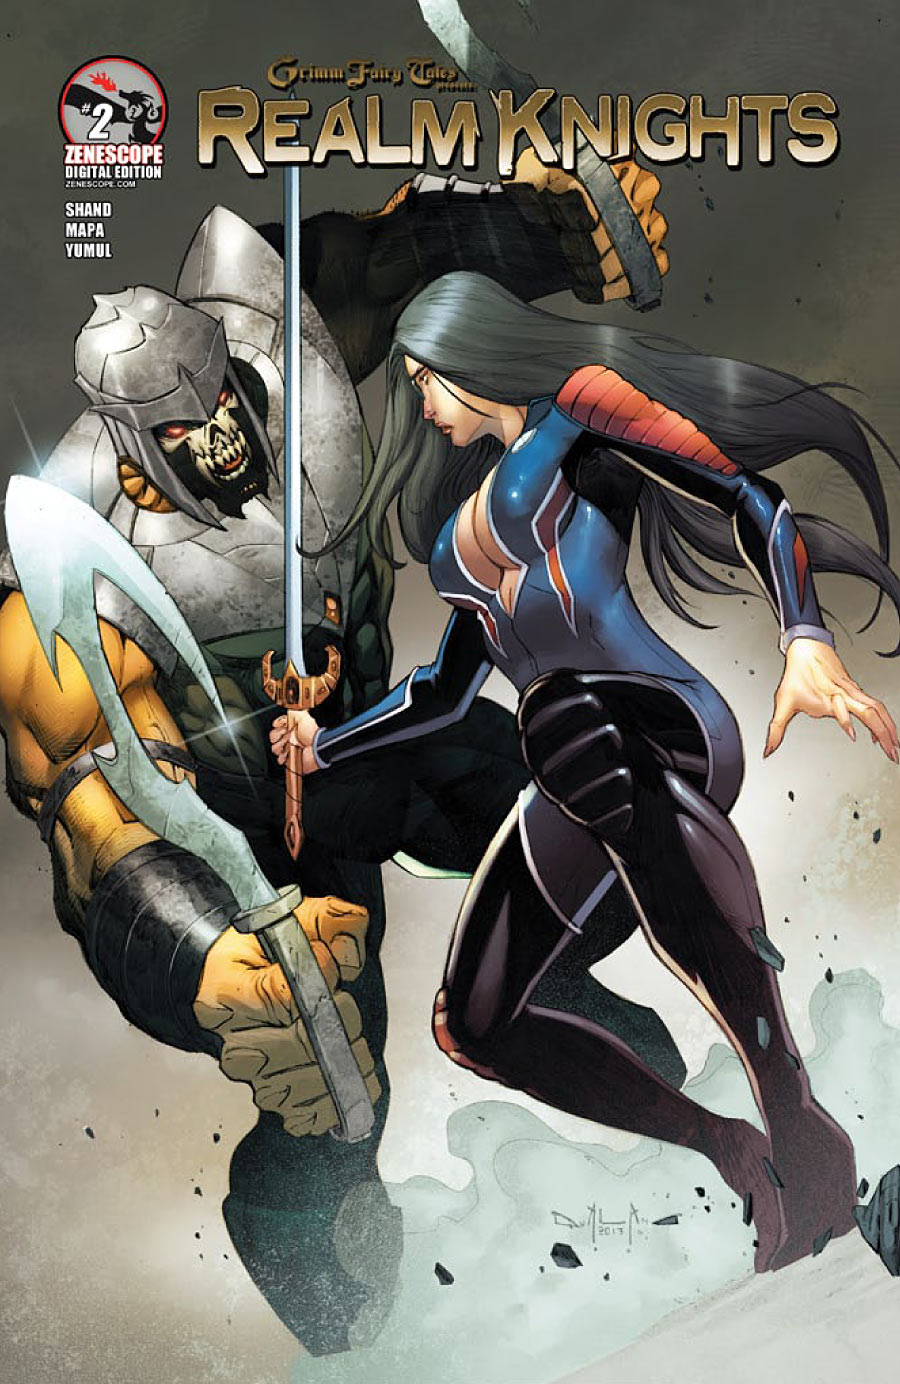 Grimm Fairy Tales Presents Realm Knights #2